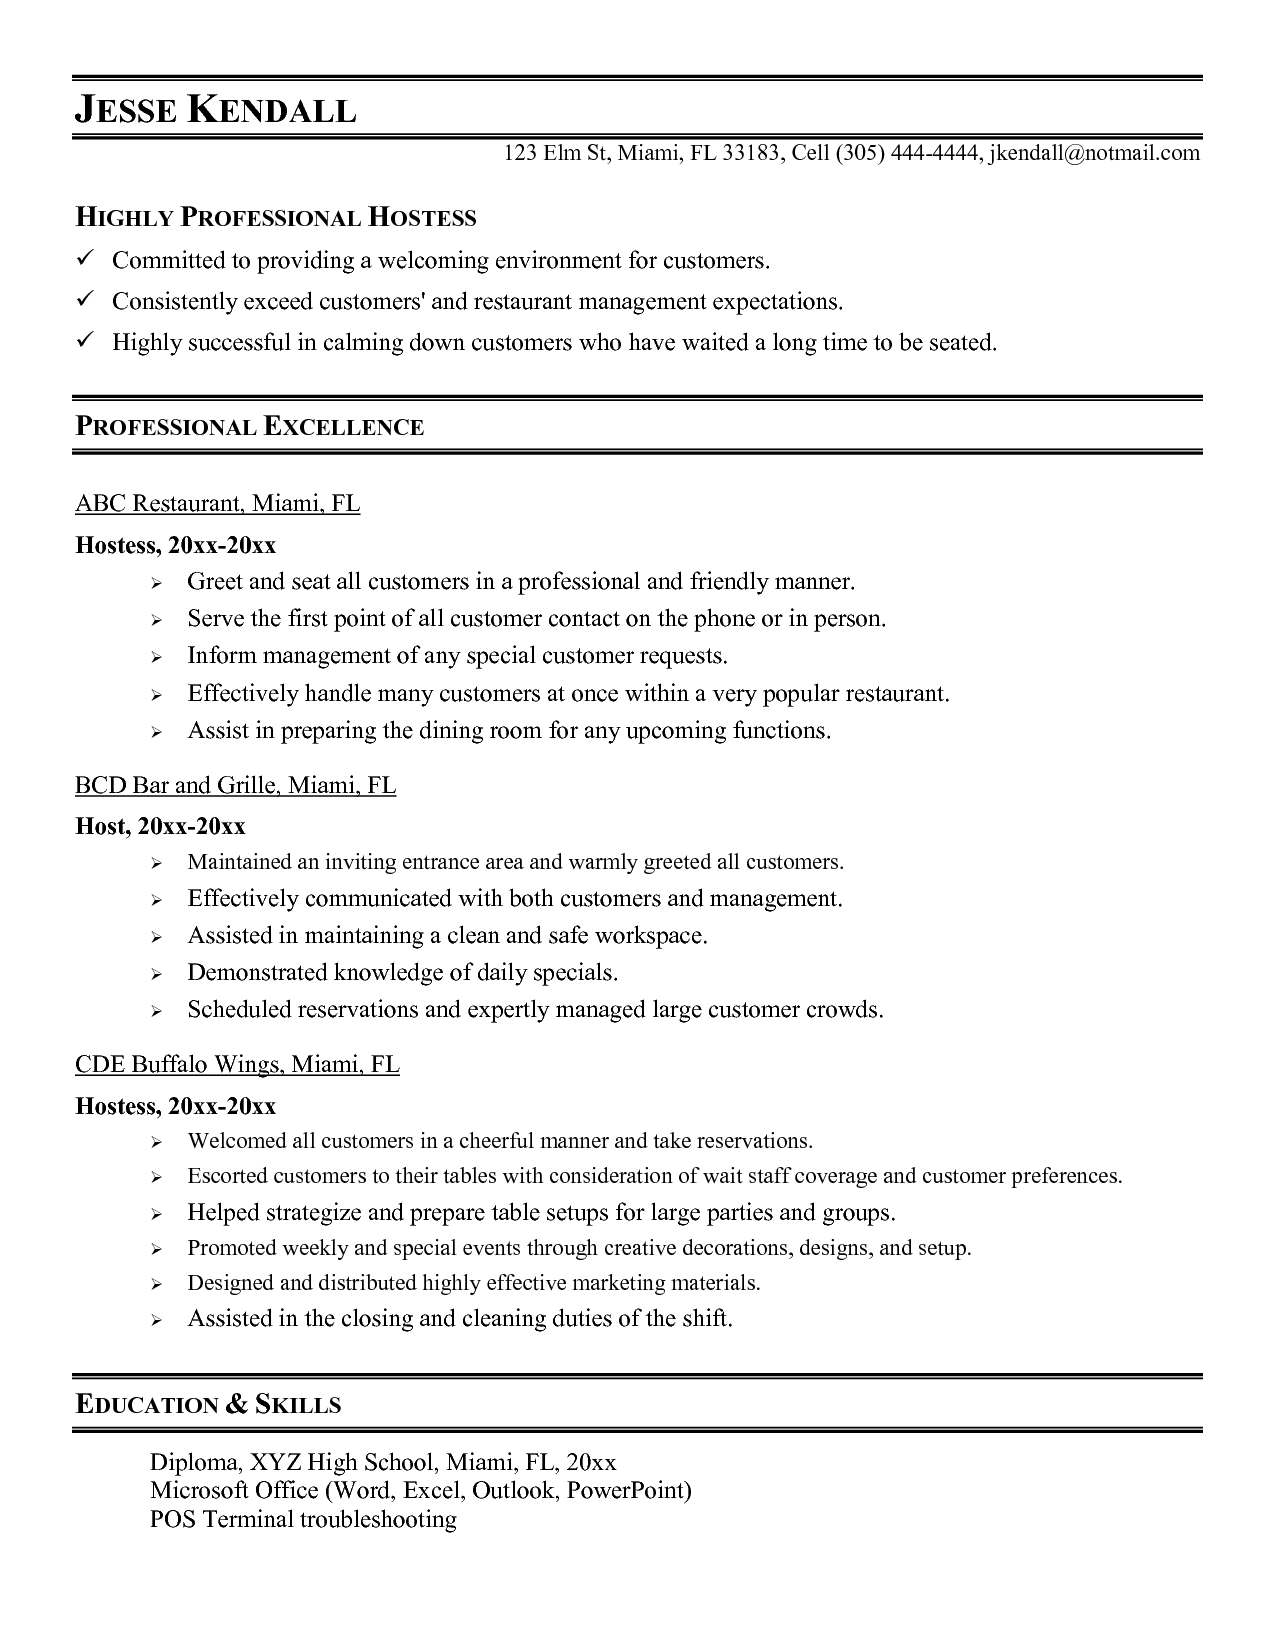 hostess job description resume highly professional hostess professional excelence